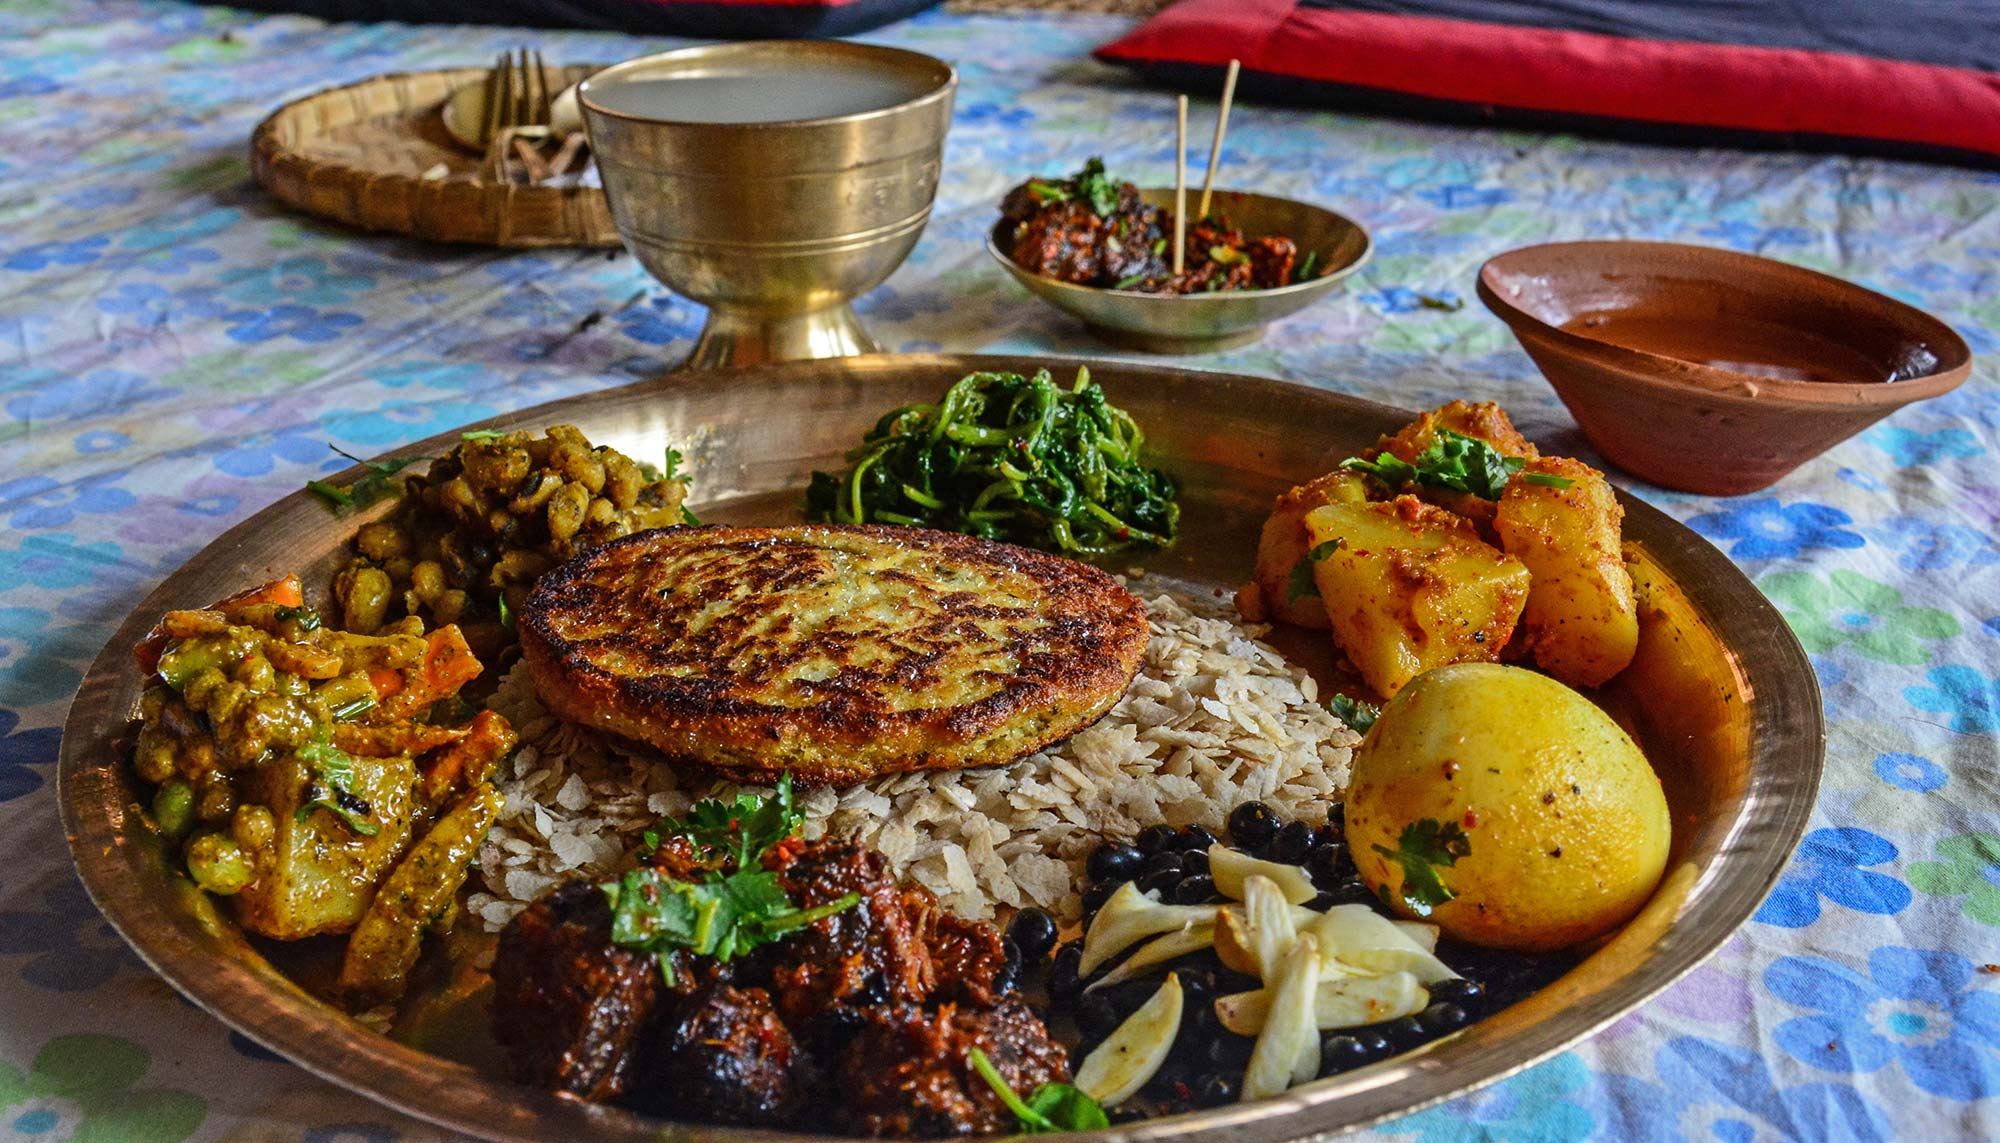 Chyola, one of the popular Newari foods. Photo: Sudeep Singh